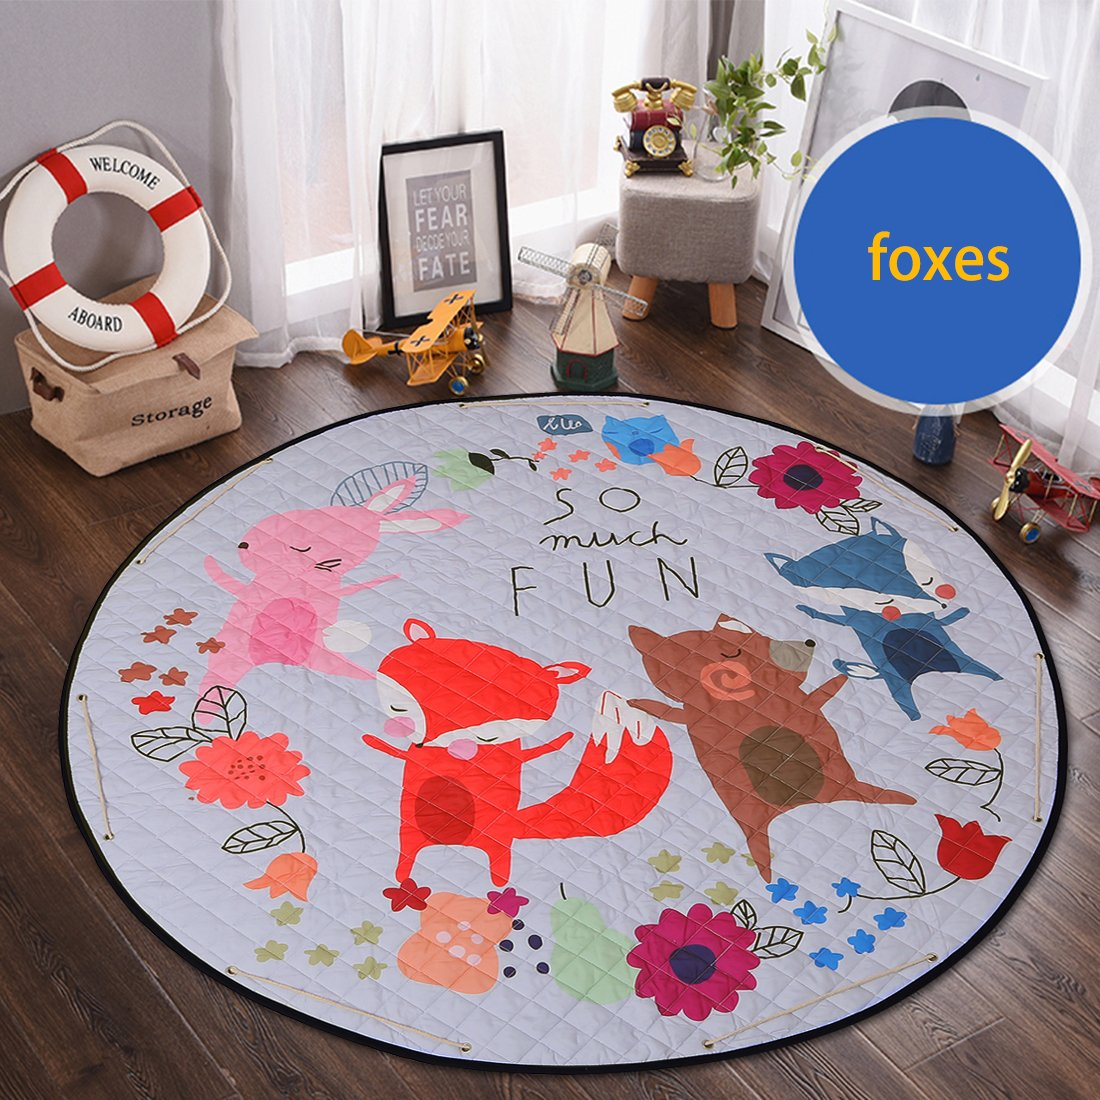 Round Kids Rug,Toys Storage Organizer,Nursery Rugs Large Cotton Anti-slip Cartoon Animal Baby Floor Mat Game Mat Area with Drawstring for Kids Room Living Room, 59x59 Inch (Foxes) by okdeals